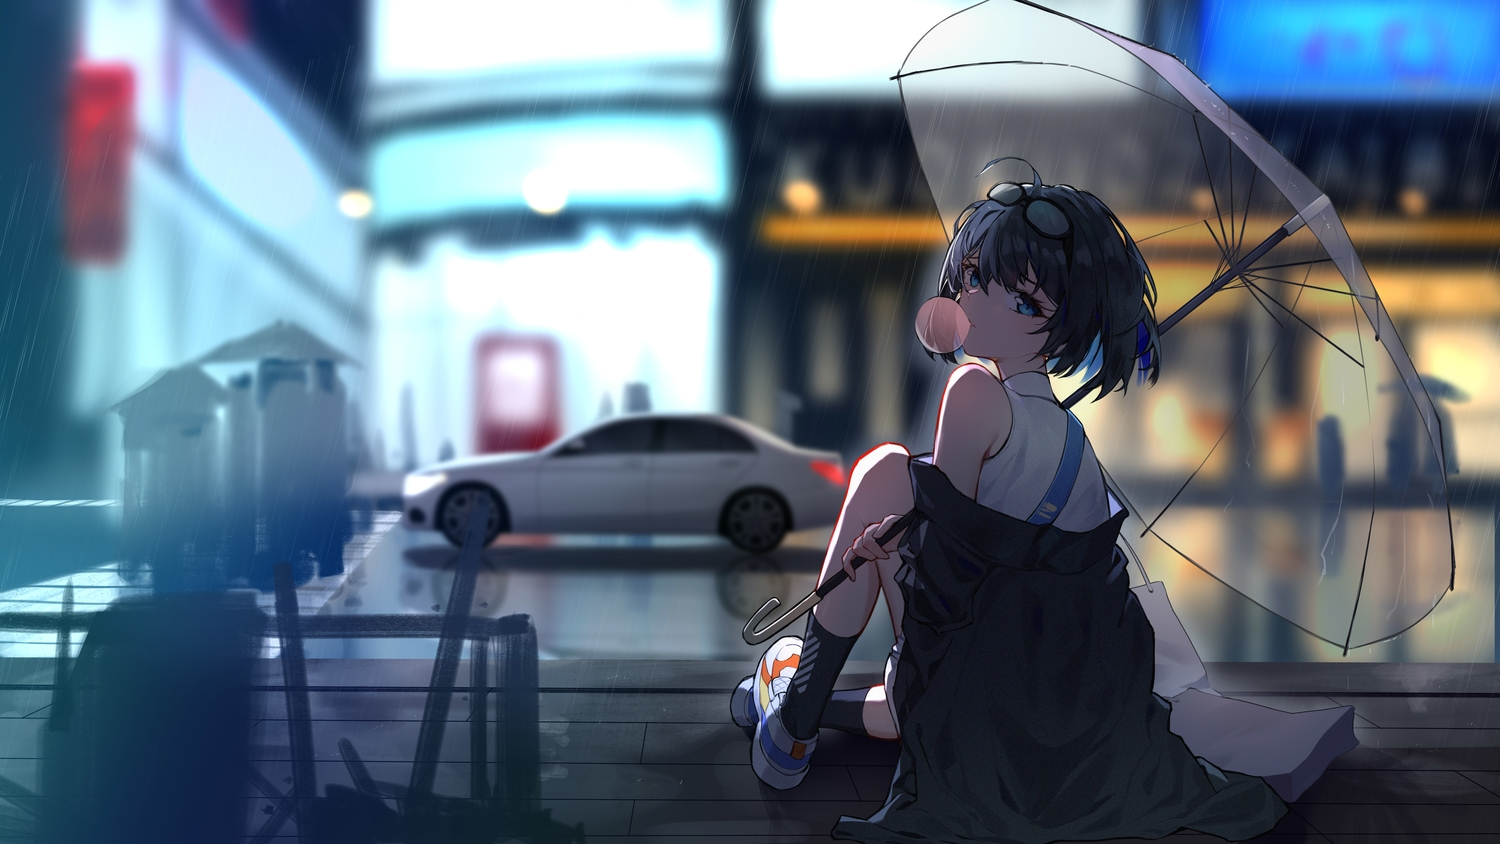 glasses honkai_impact jpeg_artifacts kuo_(kuo114514) rain seele_vollerei short_hair umbrella water